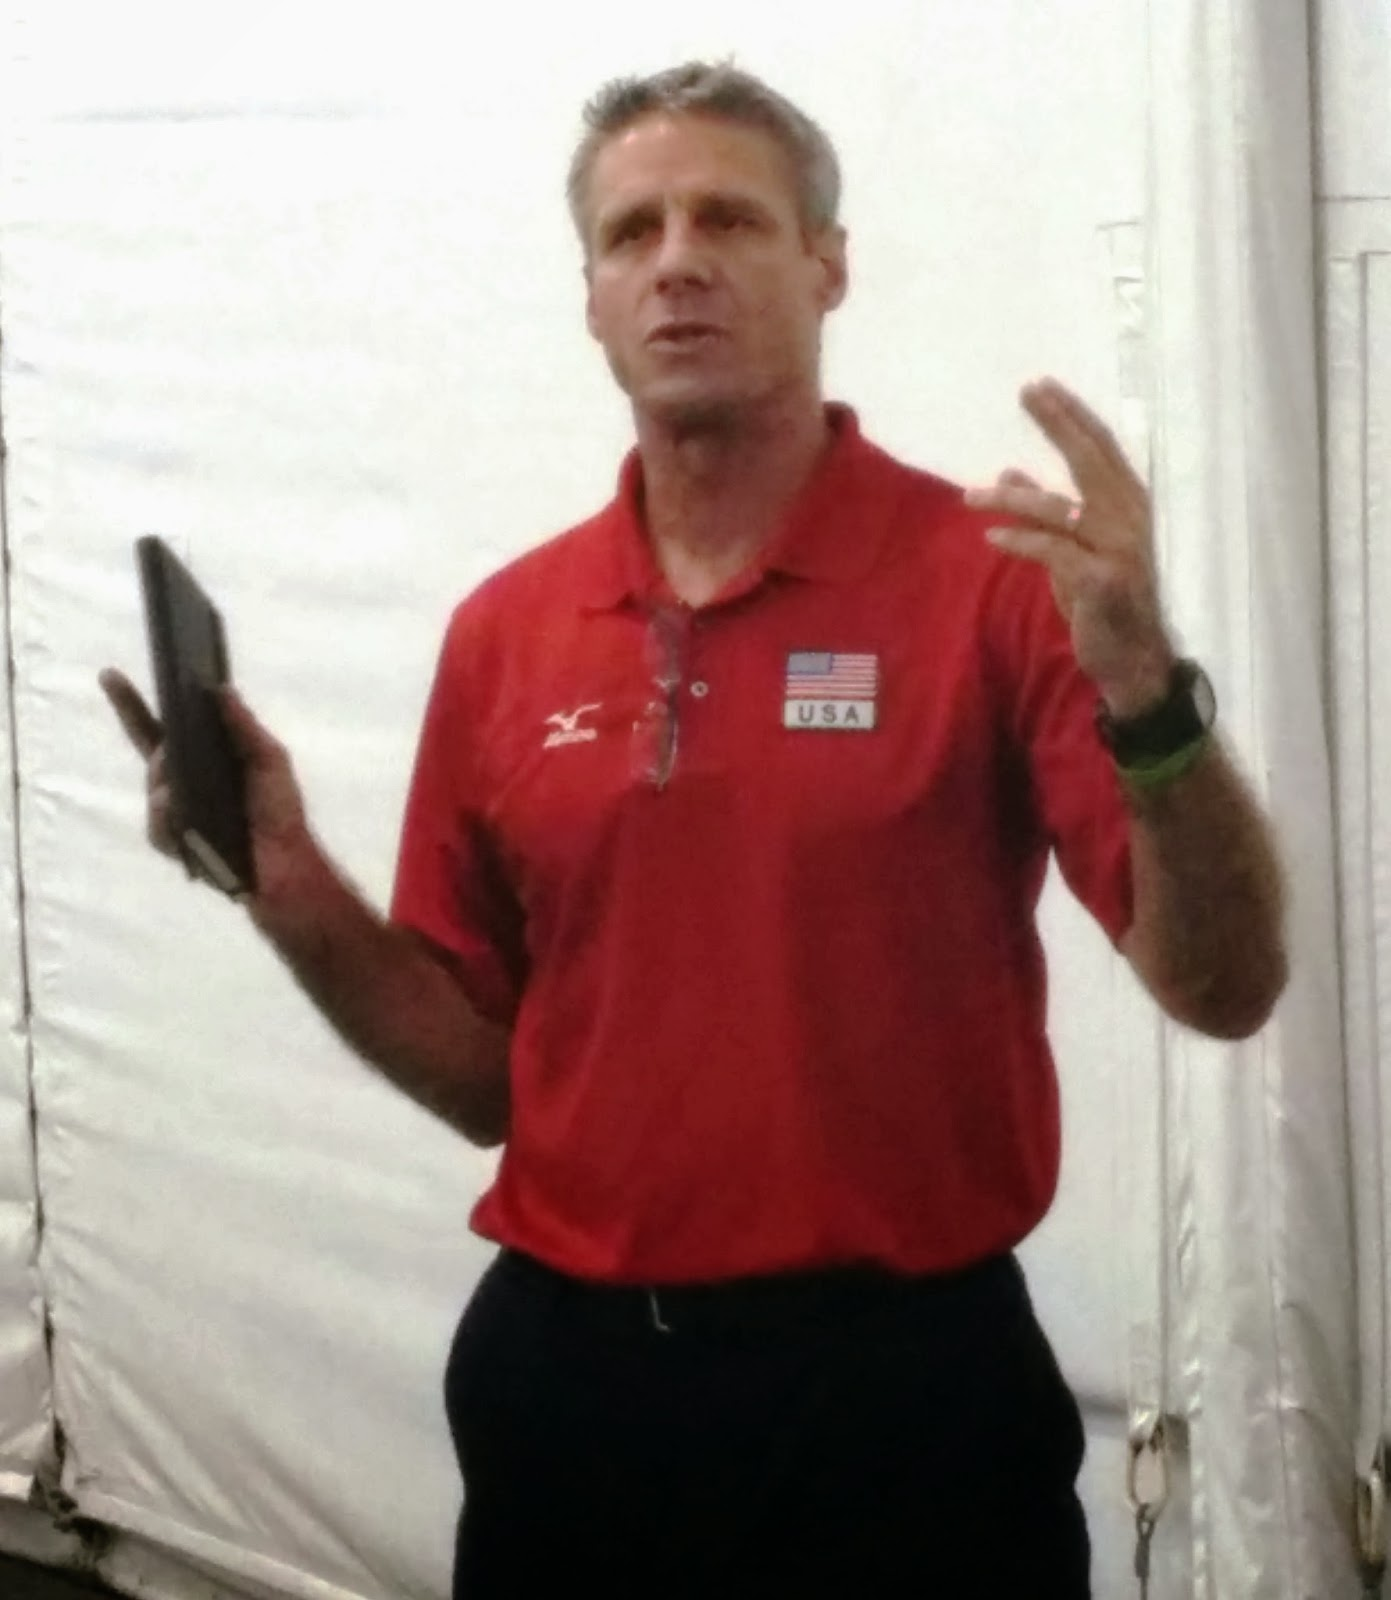 head usa coach karch kiraly held a mini coachs clinic before the festivities began he was deliberate in his speech and presentation and thoughtful in